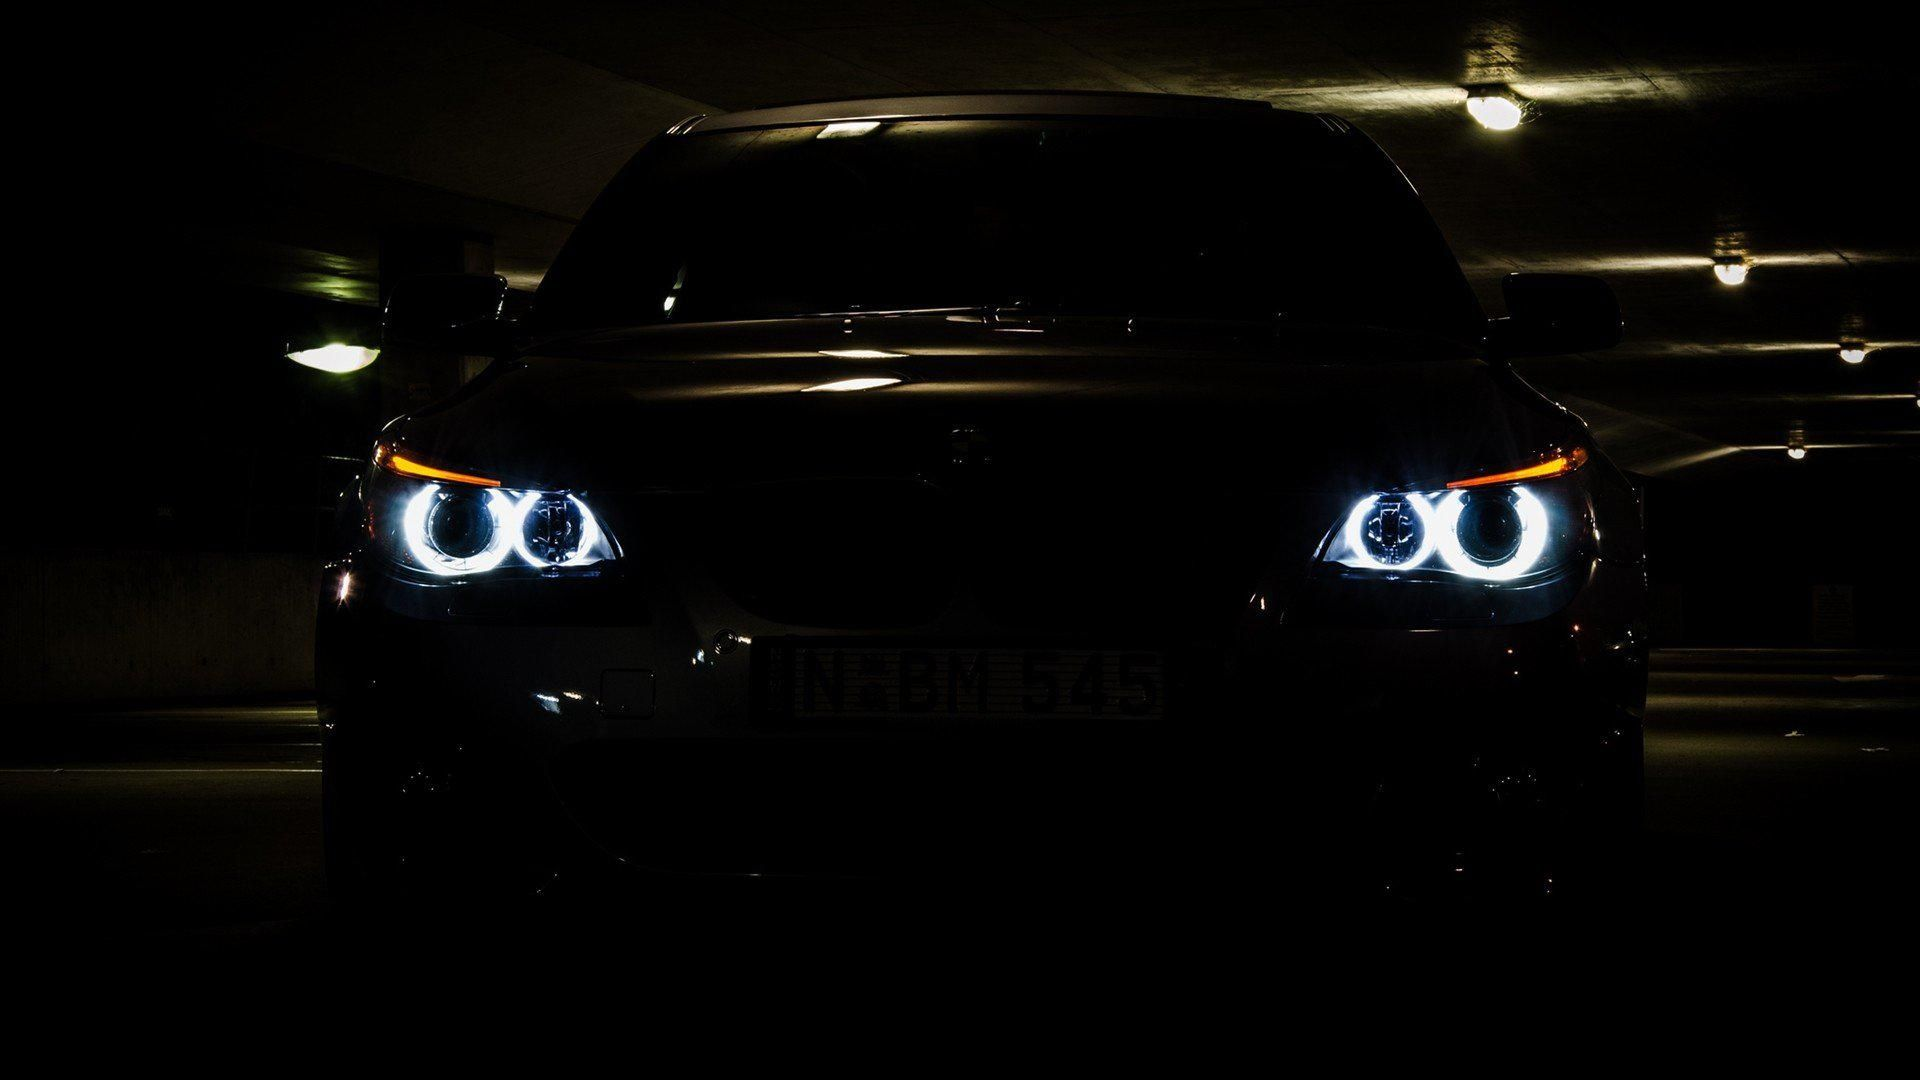 Mirror Image Auto Detailing Asheville Has Been The Finest Automotive Detailing Car Care And Reconditioning Studio In Ashe Bmw Wallpapers Bmw Motorbikes Bmw M5